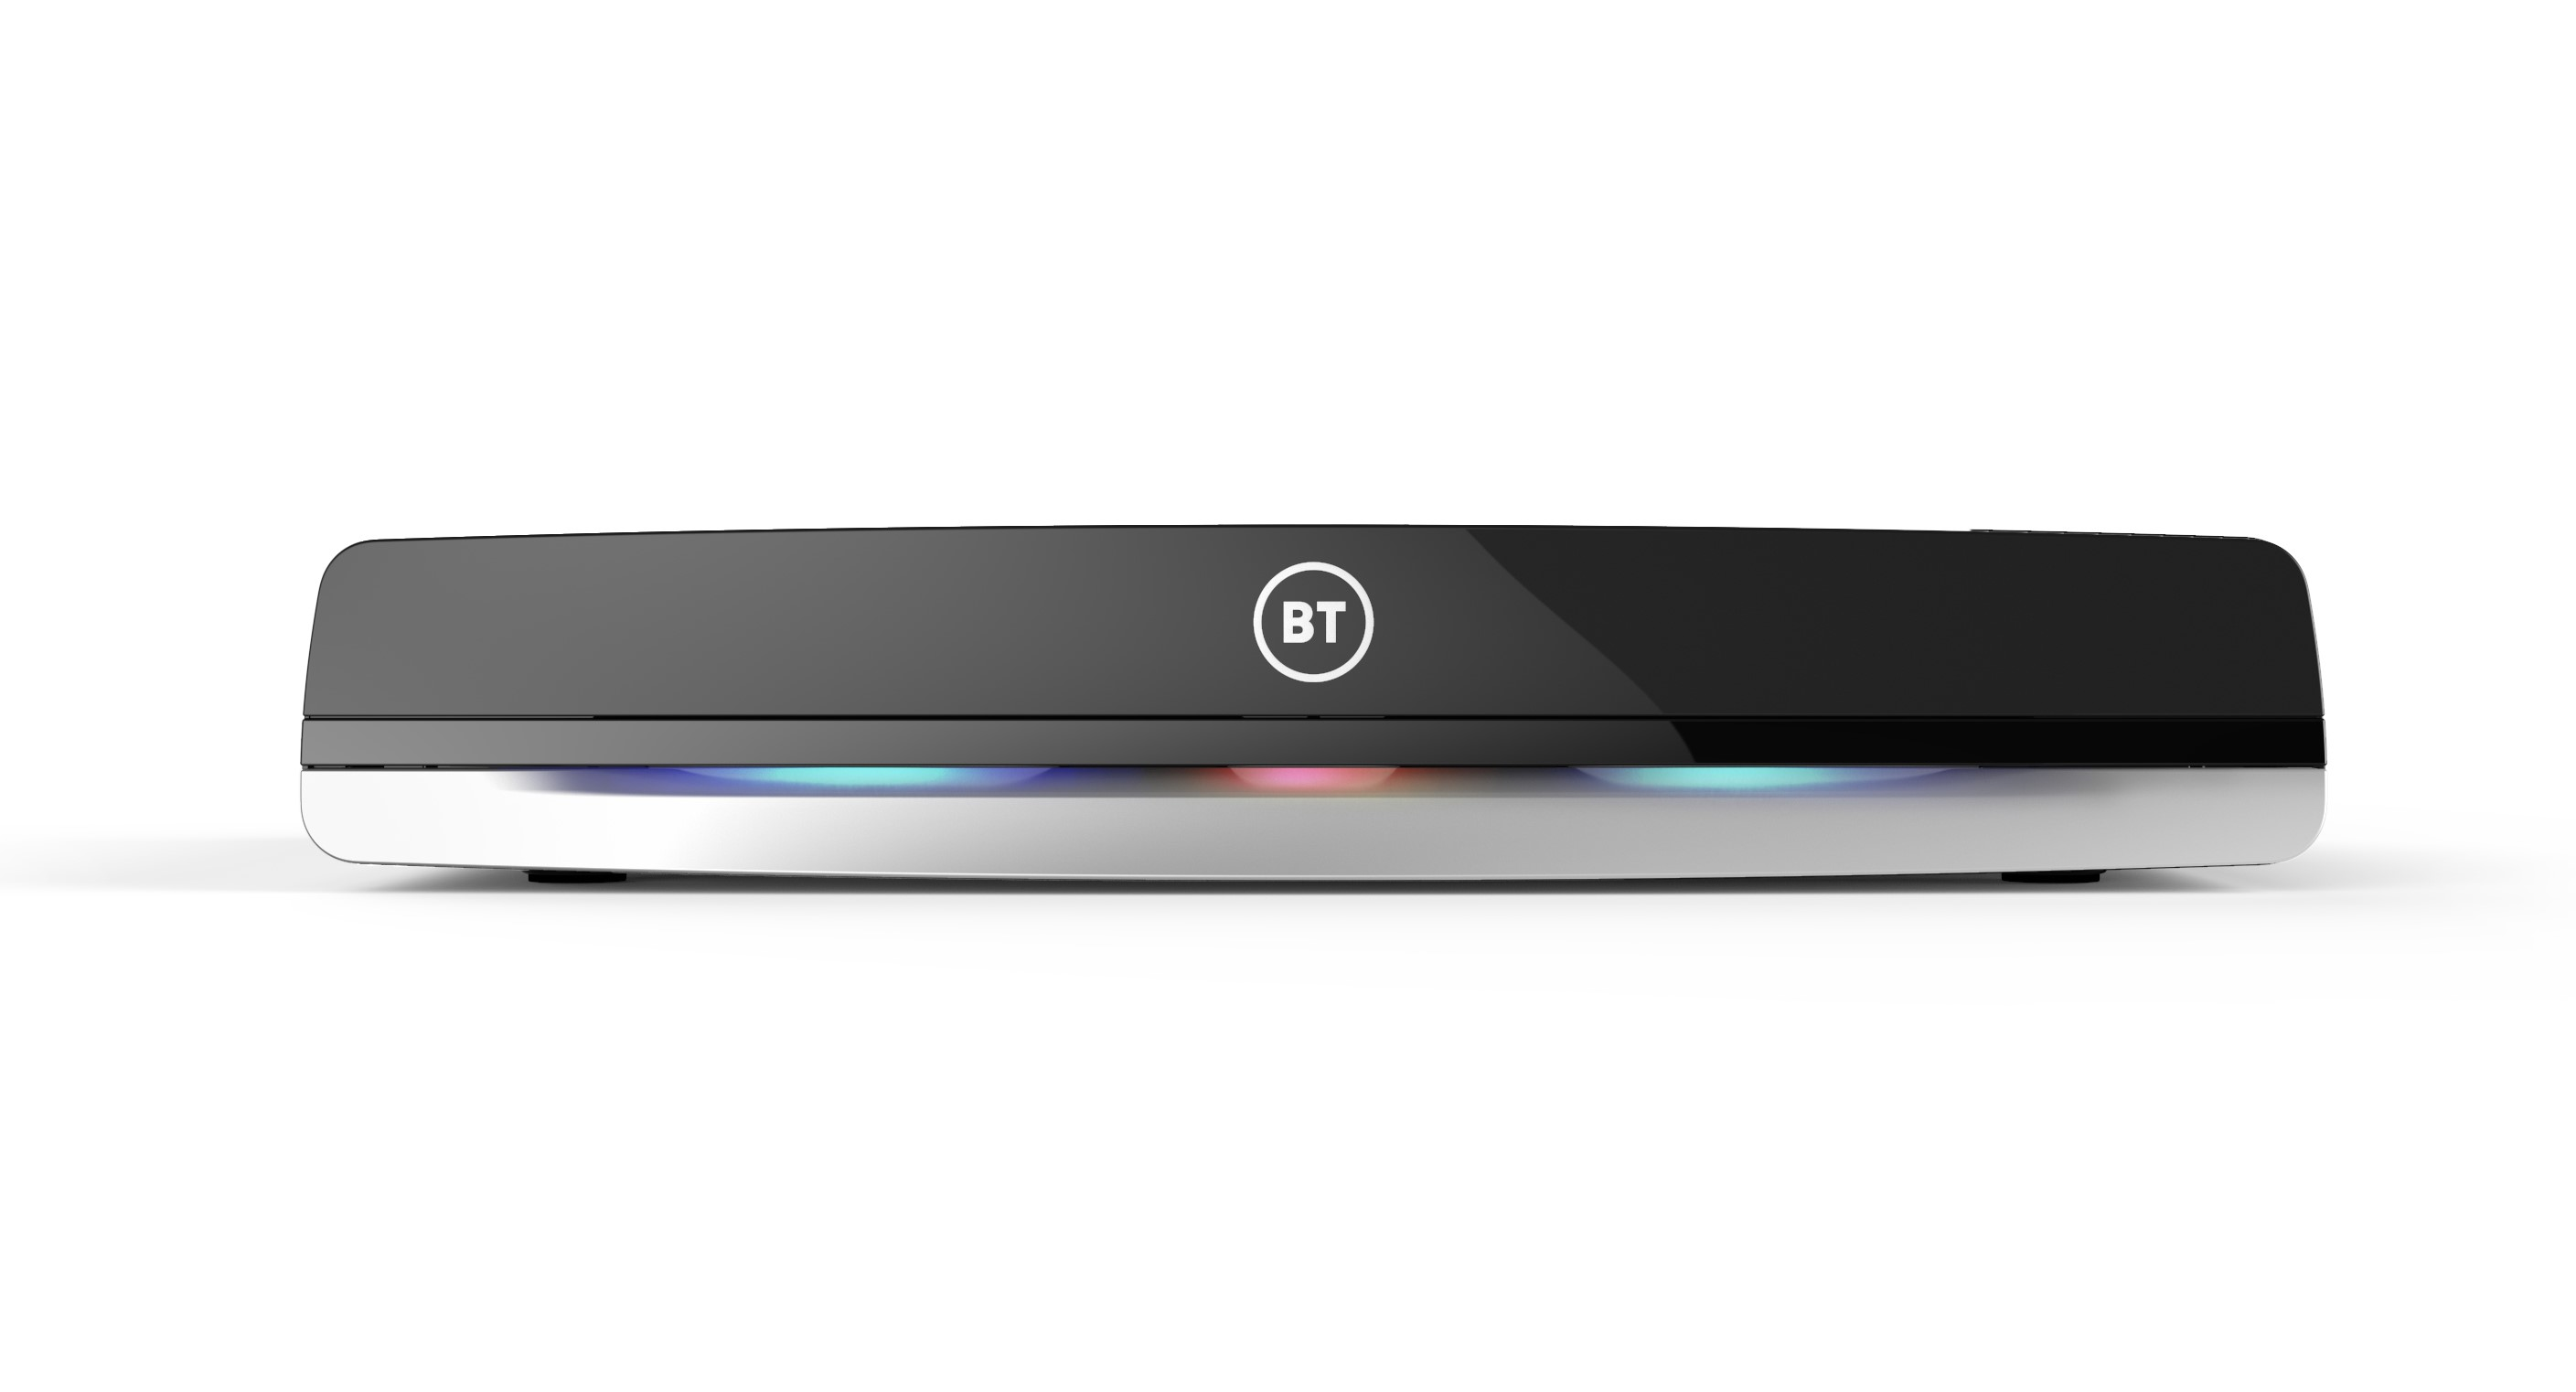 G4 BT TV Box on white background